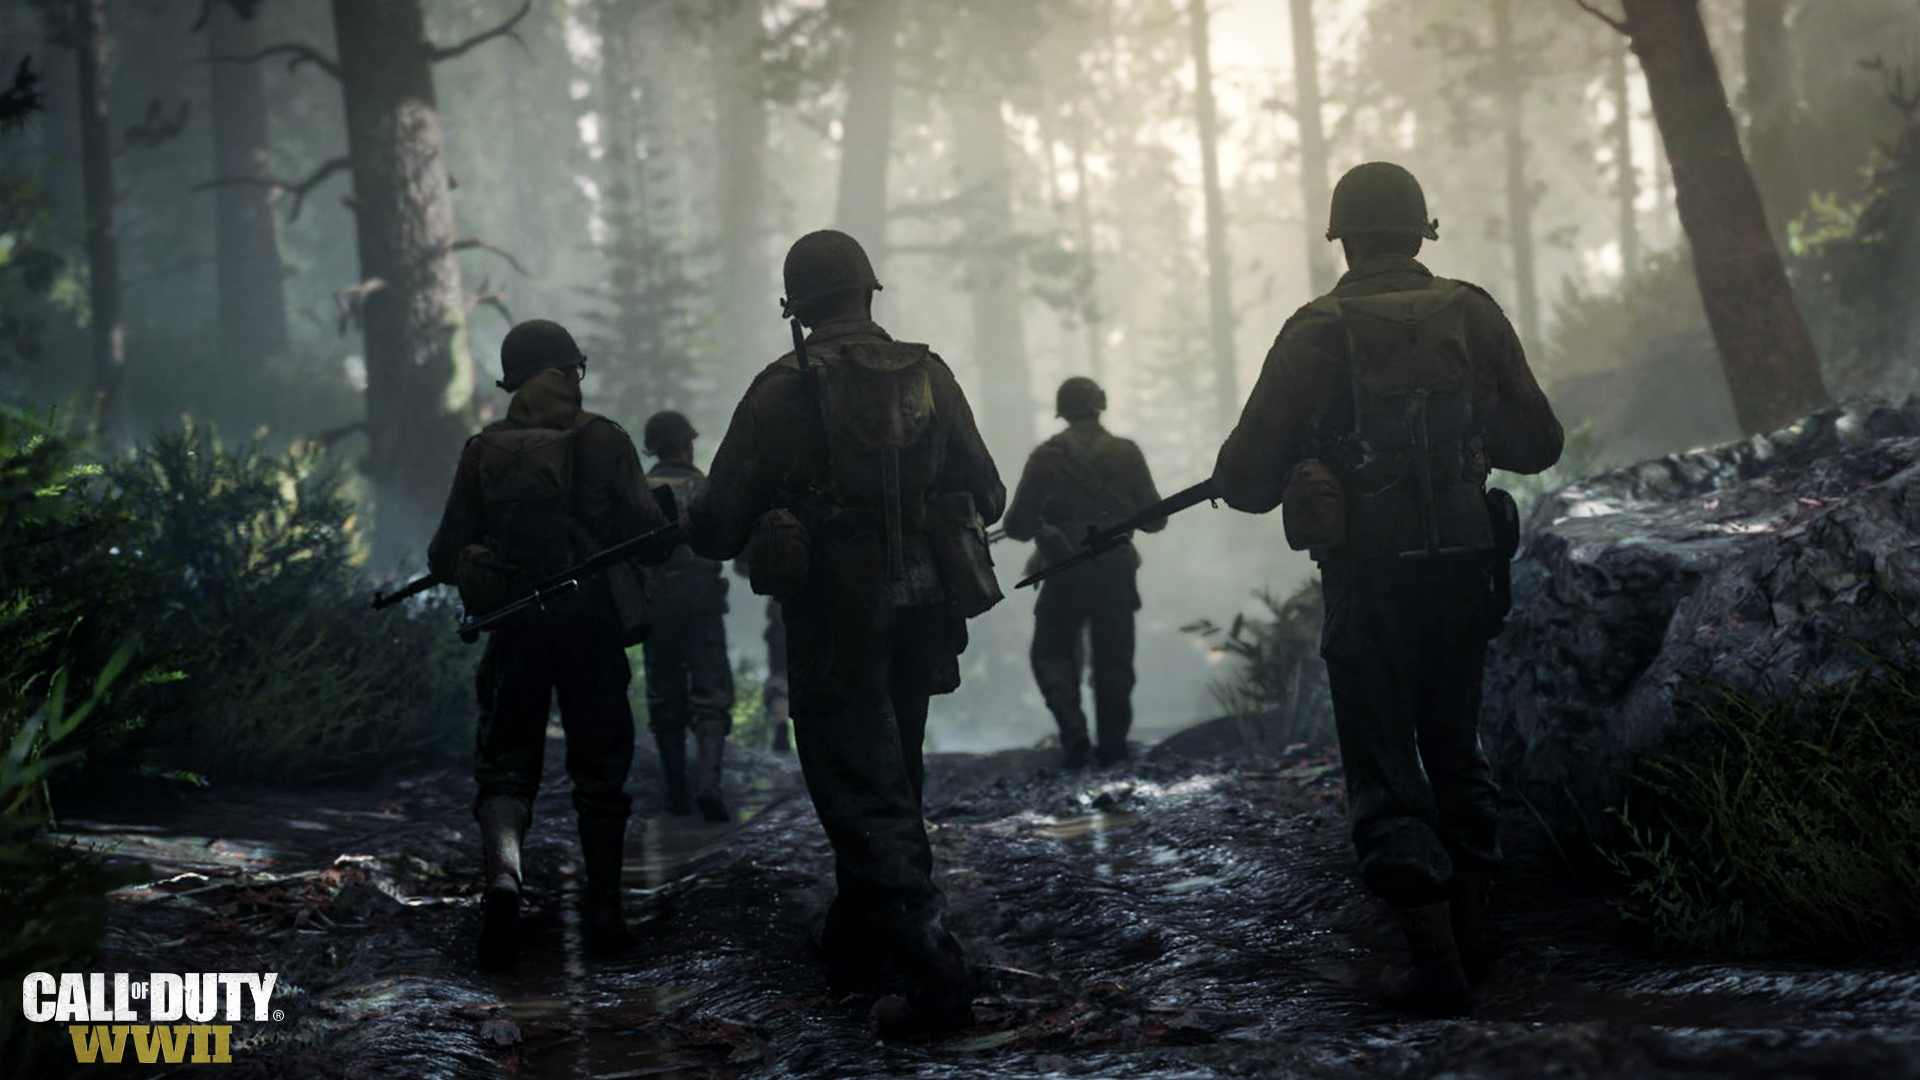 Rumour: Call of Duty: WWII May Feature Gamemodes With 40+ Players